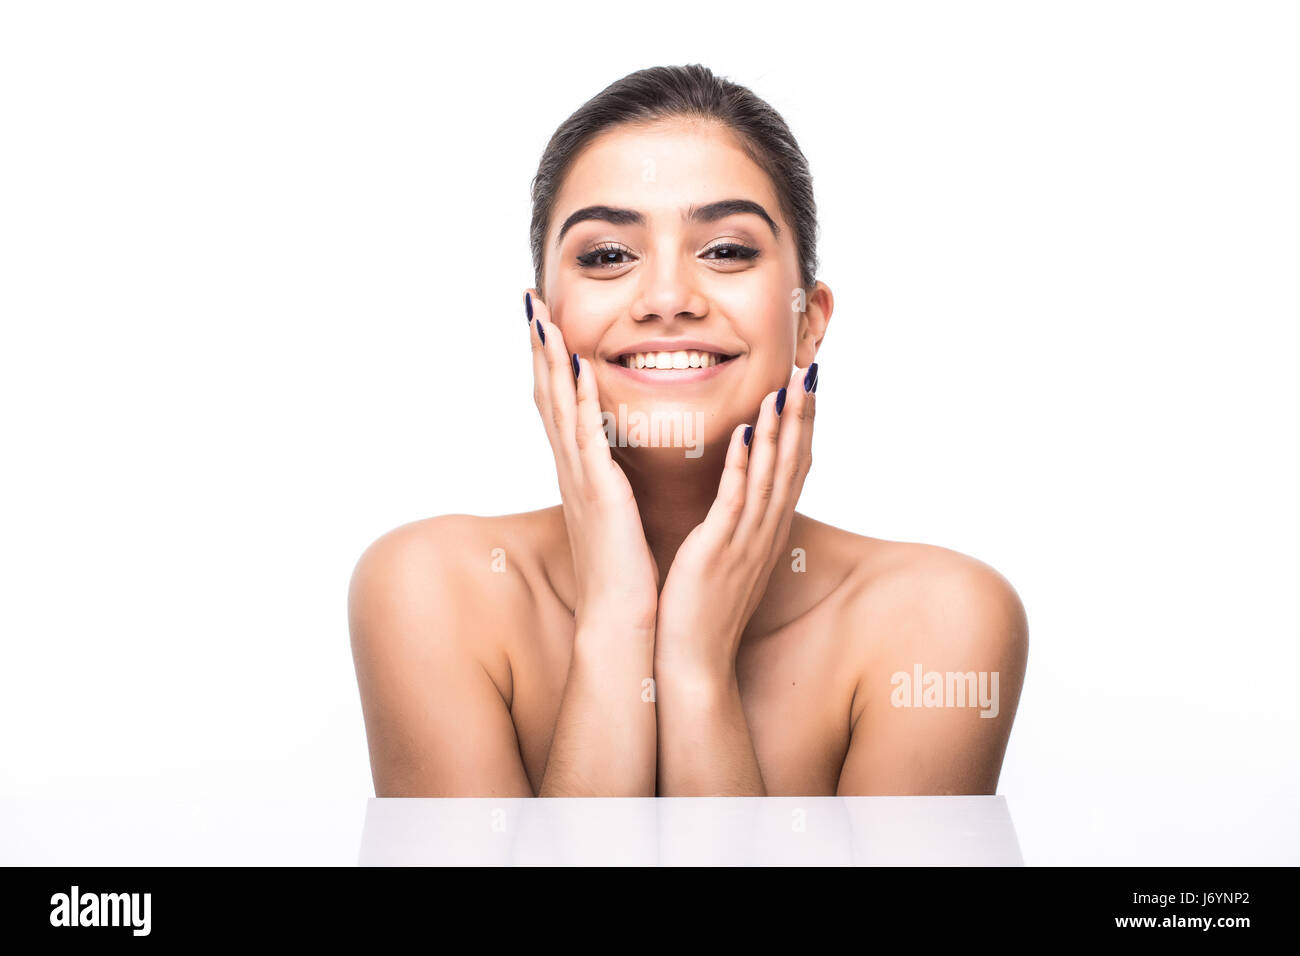 Beautiful woman face. Caucasian young girl close up portrait. lips, skin, teeth isolated on white background. Stock Photo